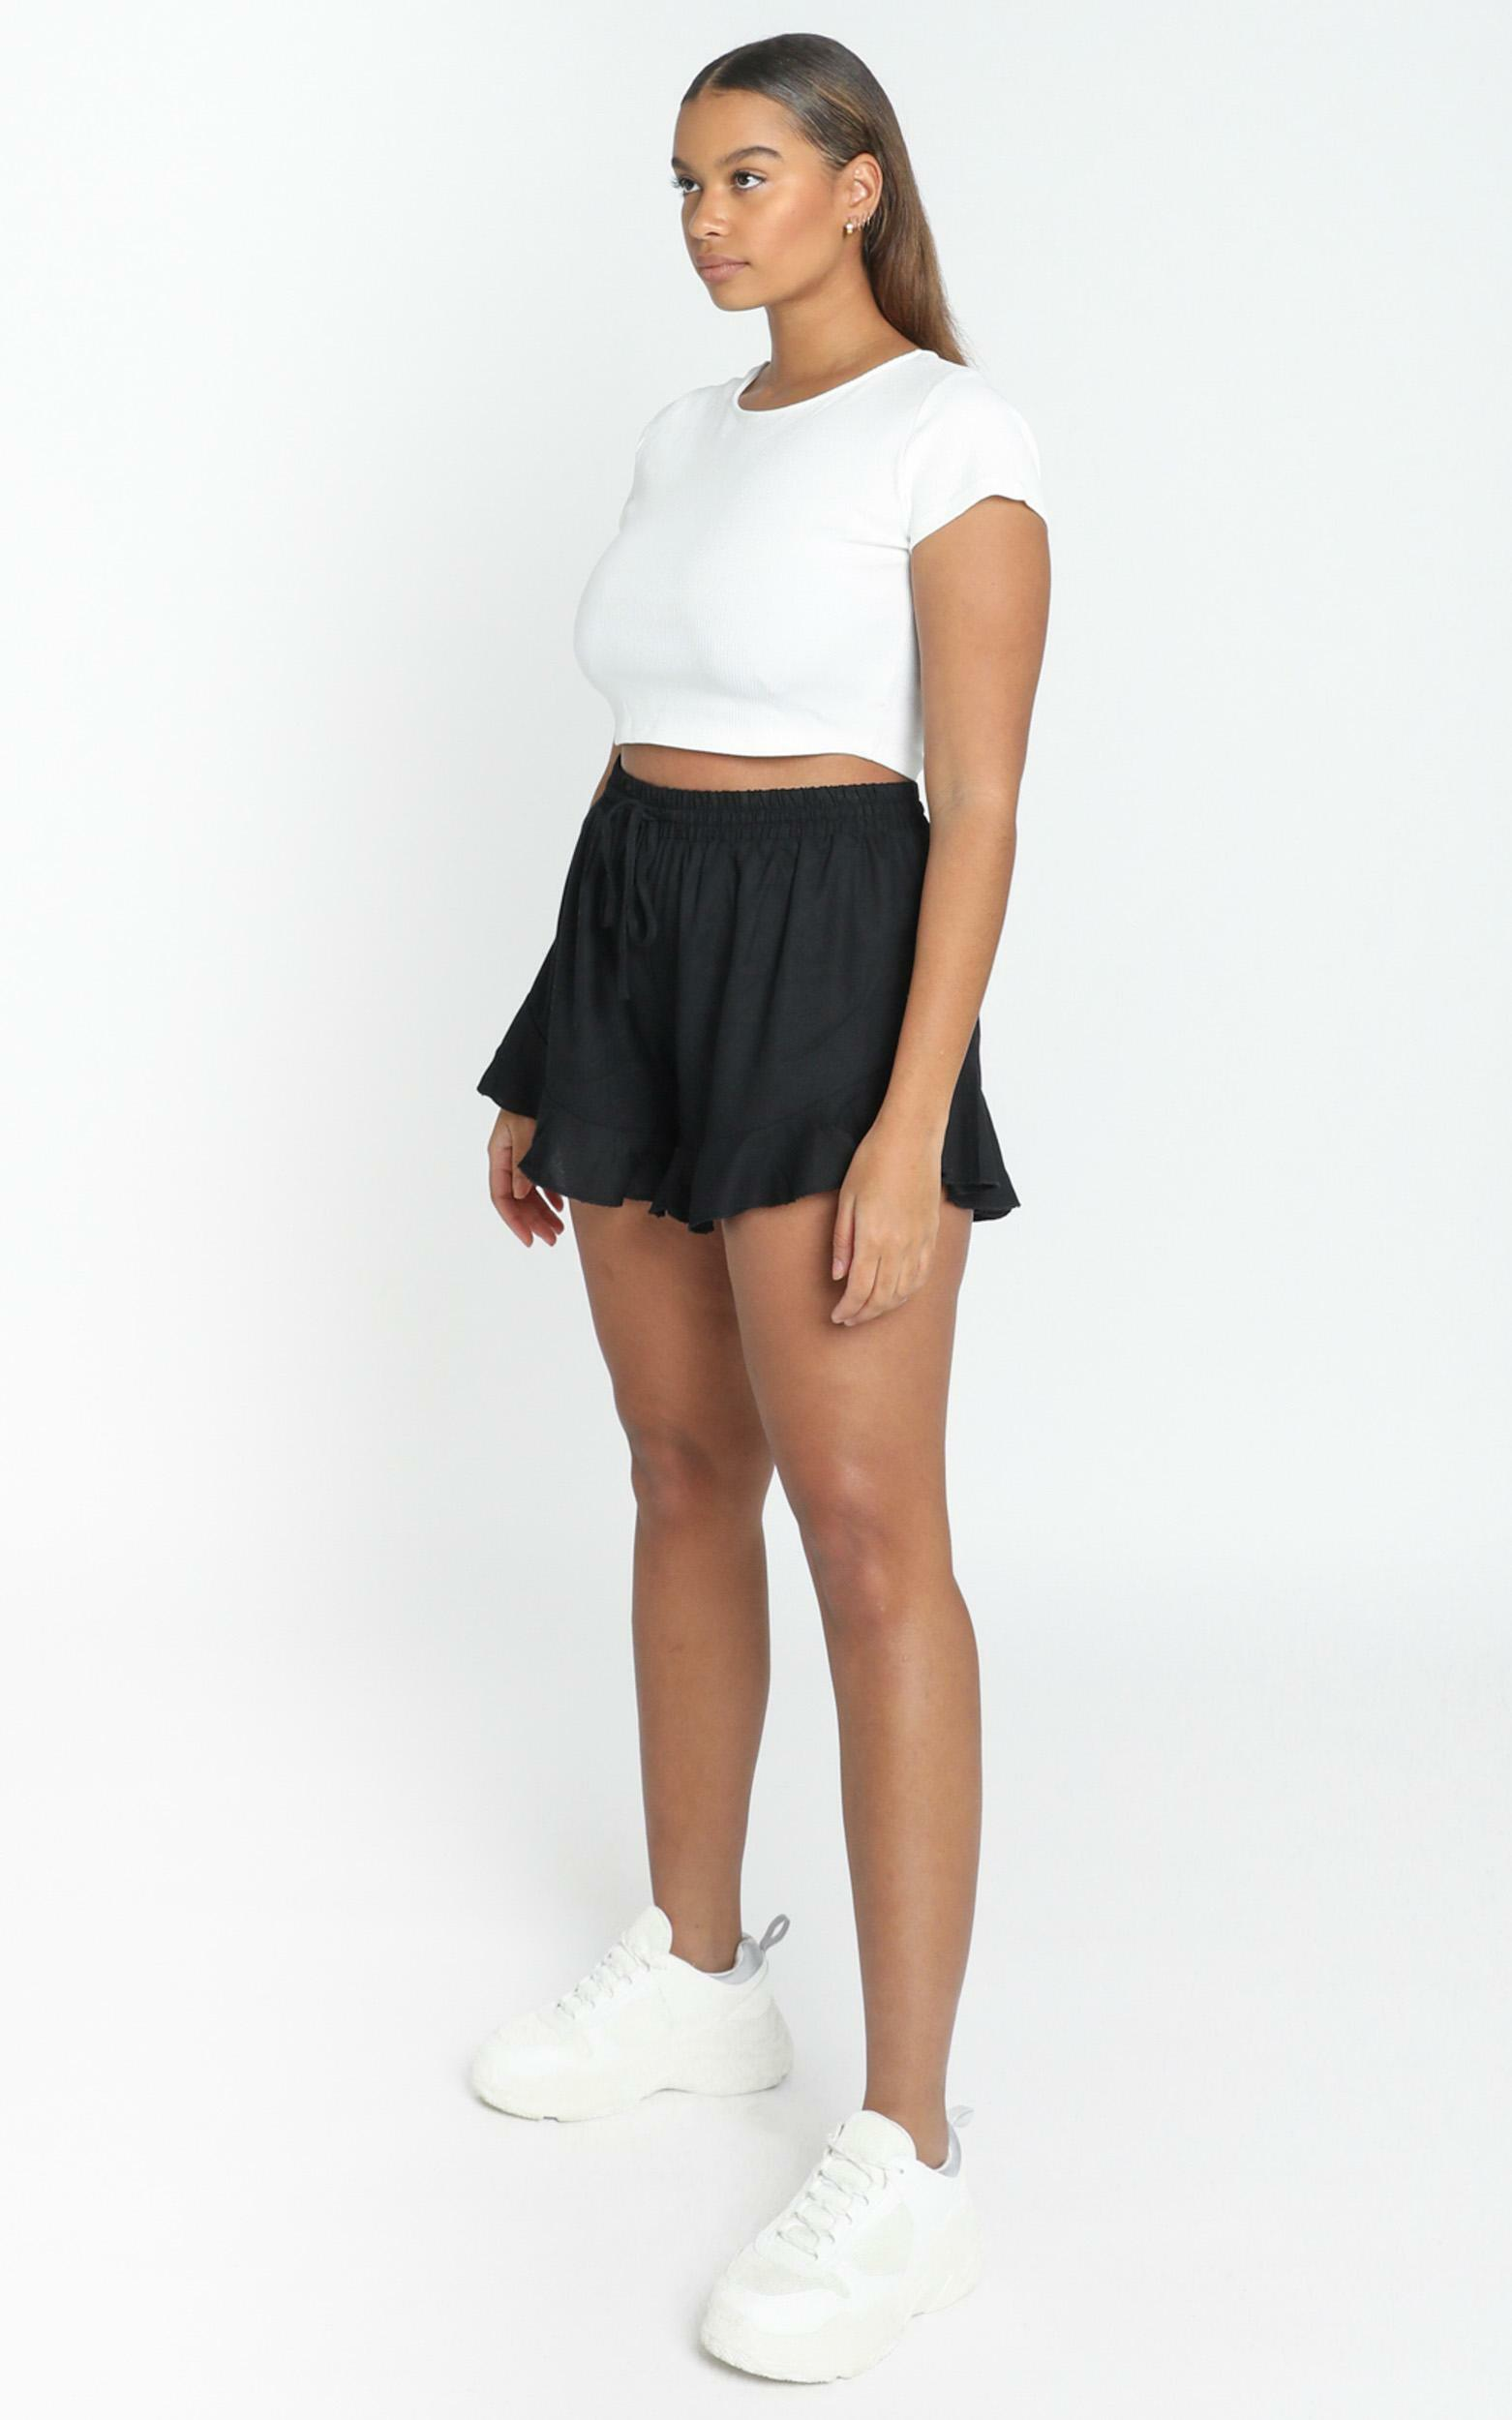 Beach Vibes Shorts In Black Linen Look - 20 (XXXXL), BLK1, hi-res image number null